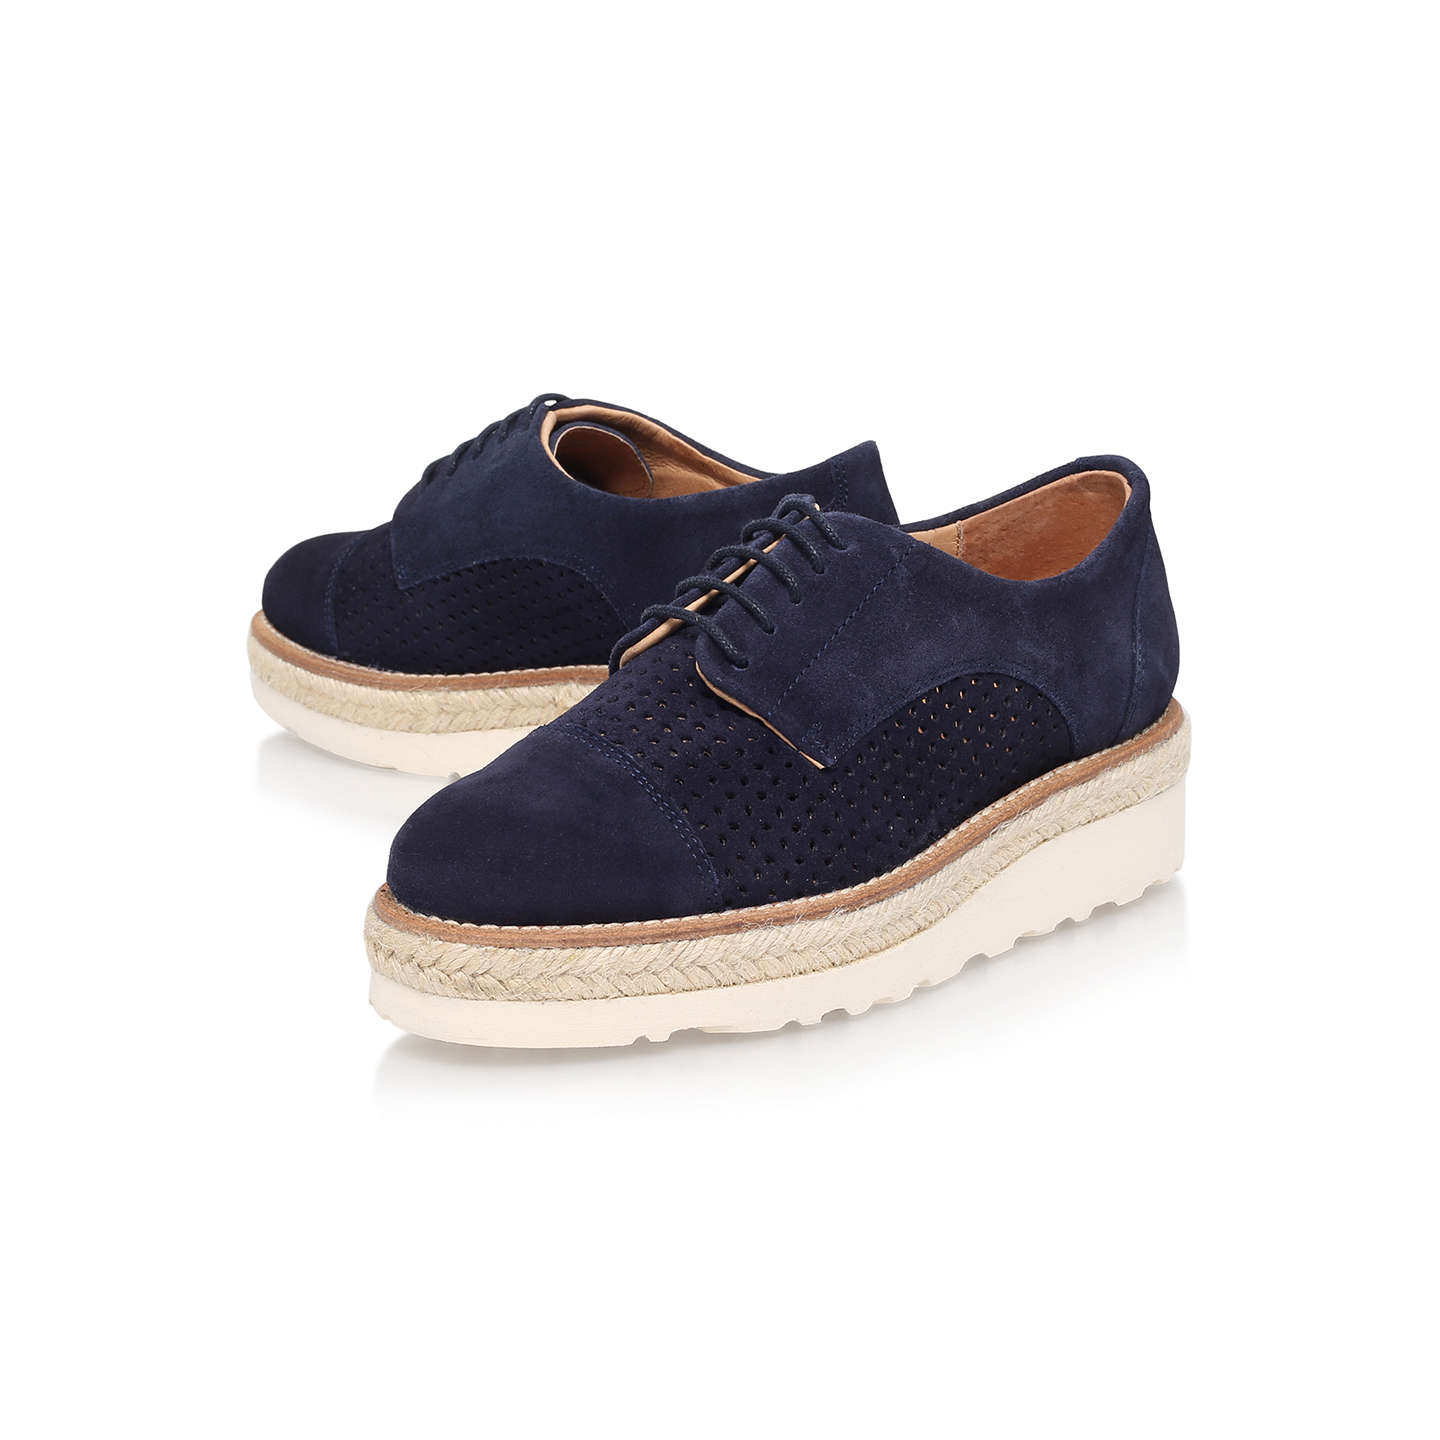 BuyCarvela Lucky Brogues, Grey Suede, Navy Nubuck, 3 Online at johnlewis.com